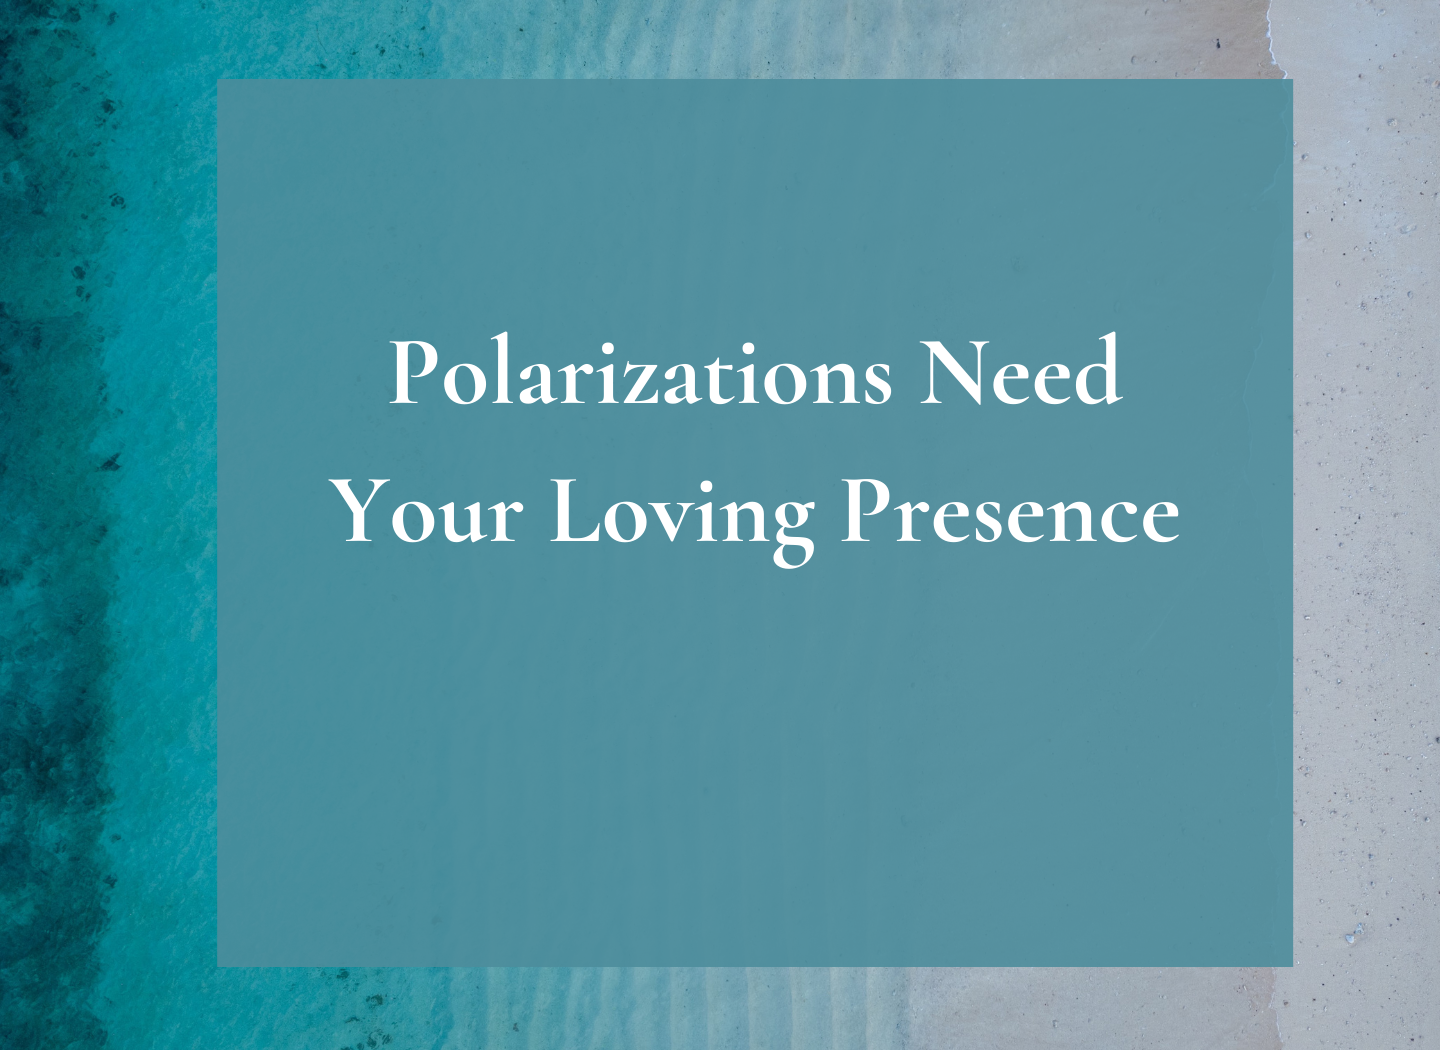 Polarizations Need Your Loving Presence